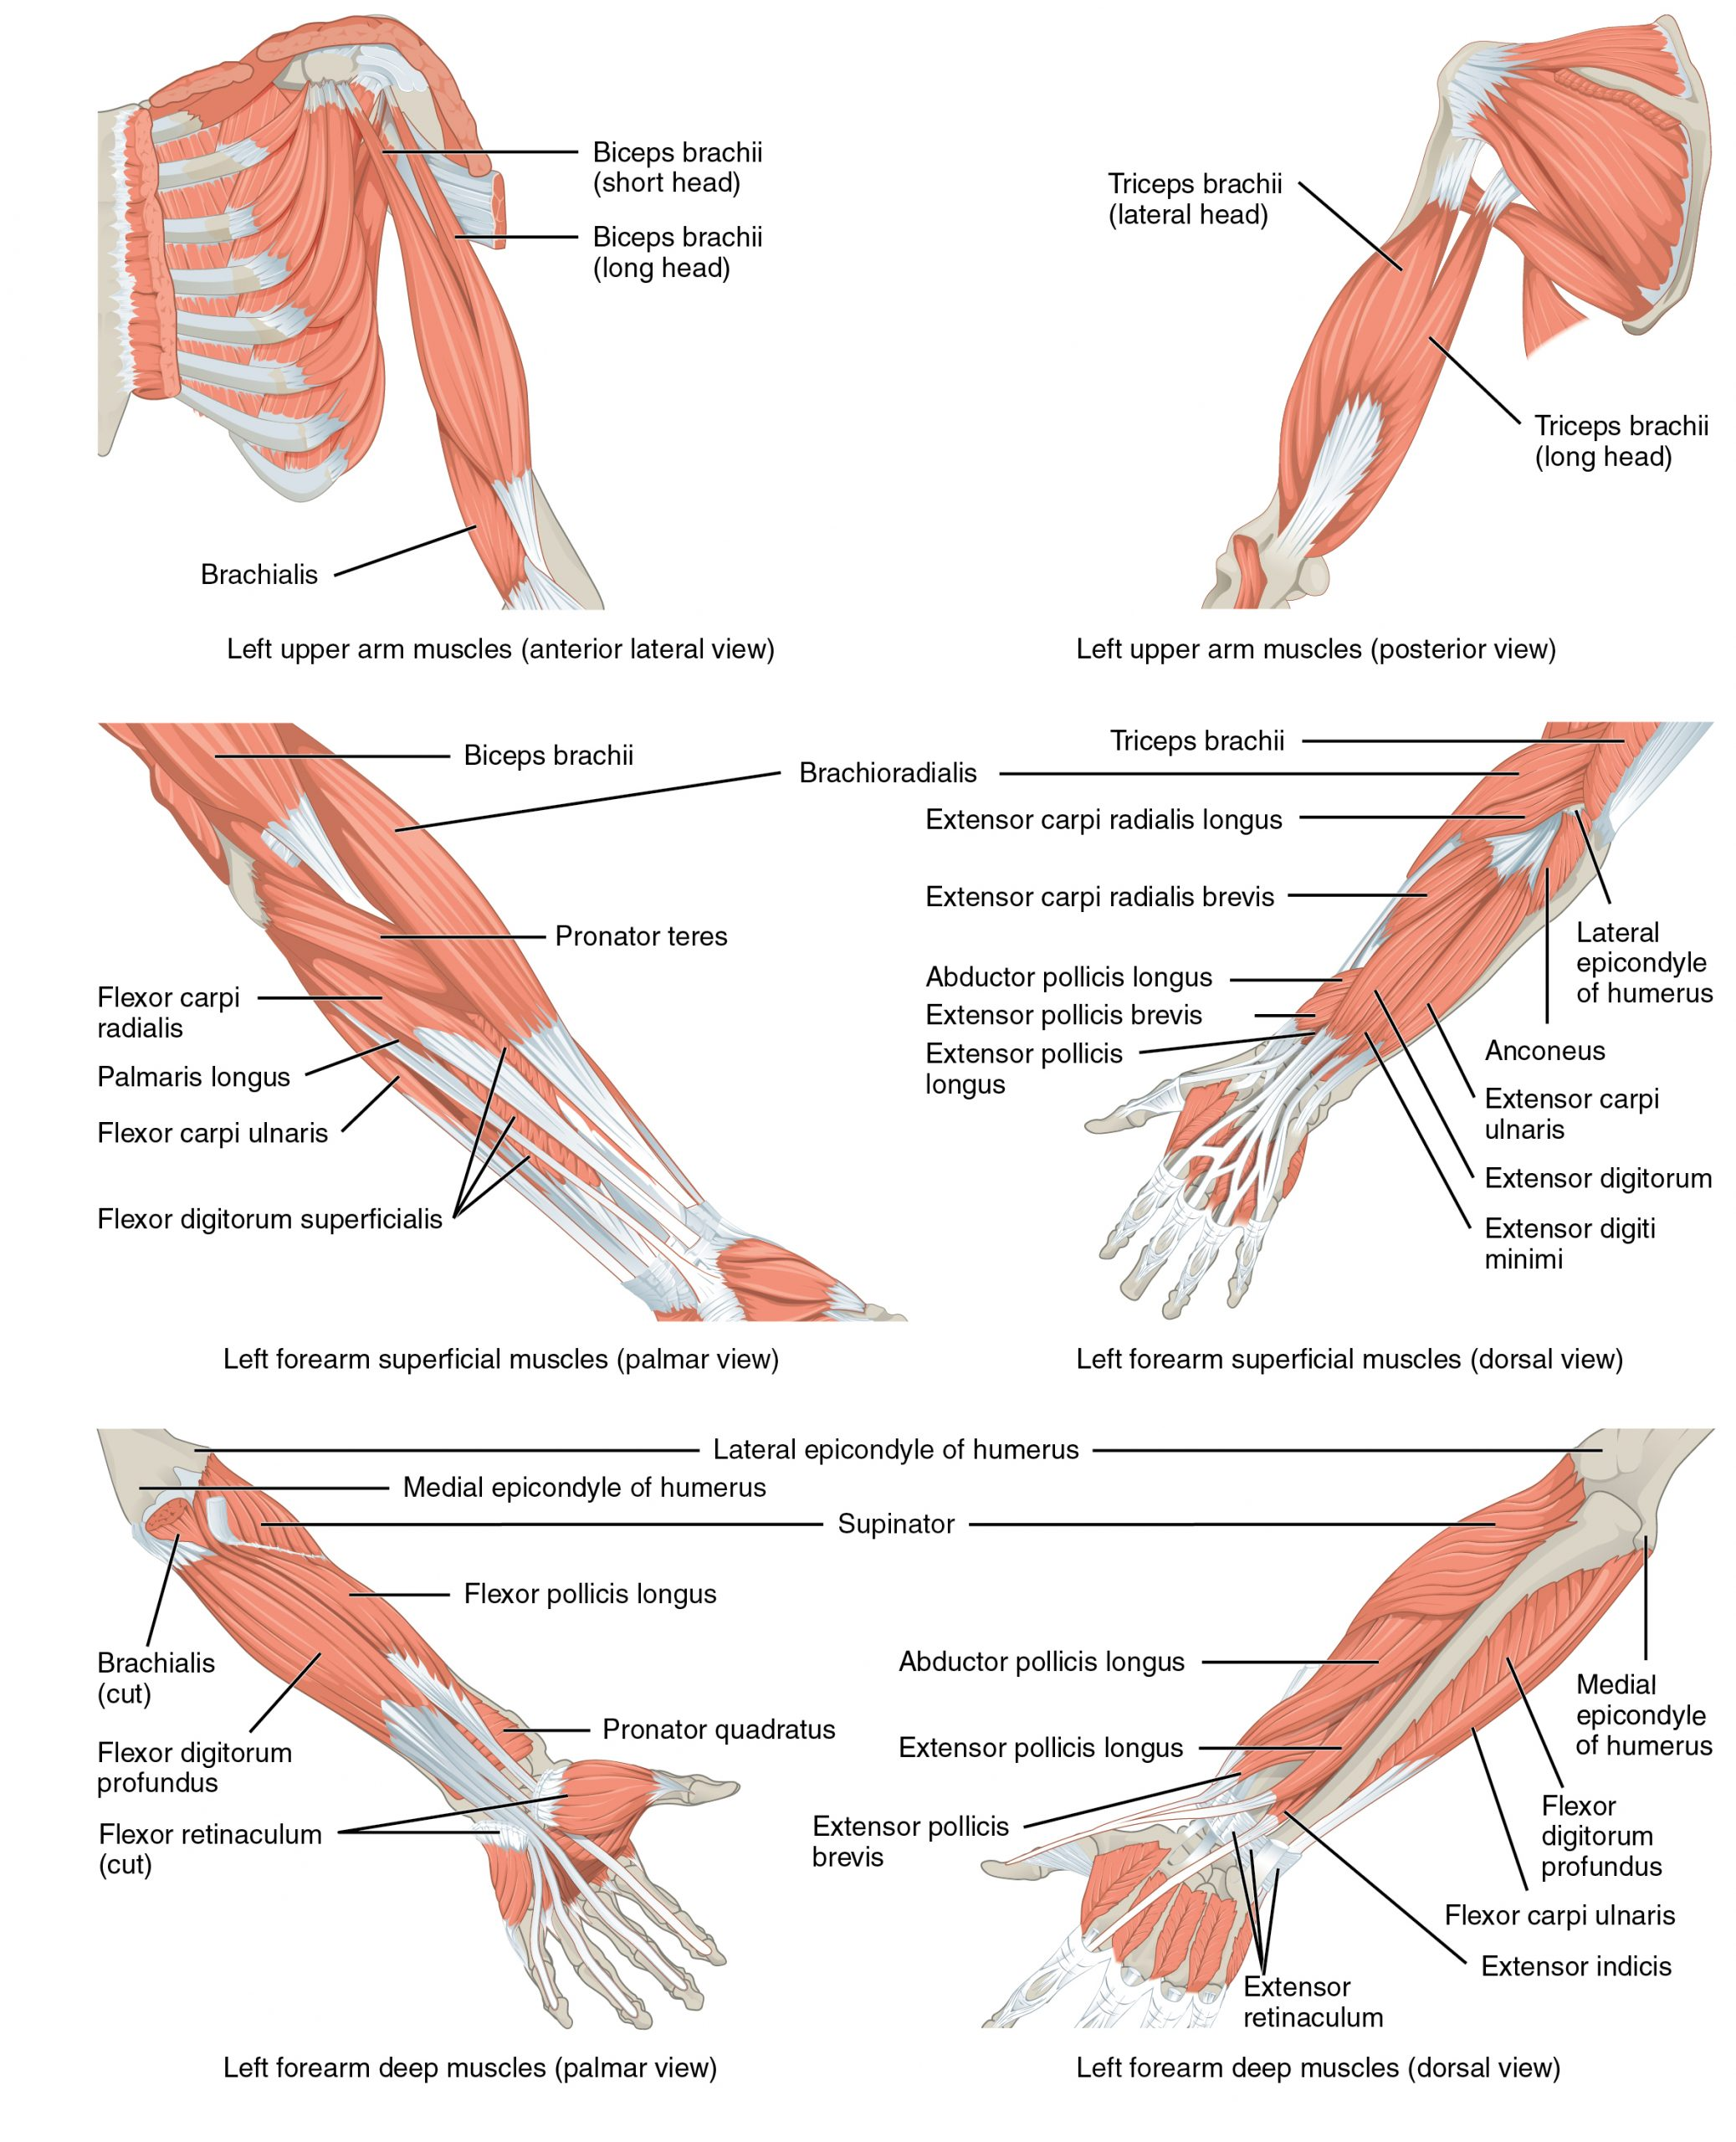 This multipart figure shows the different muscles that move the forearm. The major muscle groups are labeled.